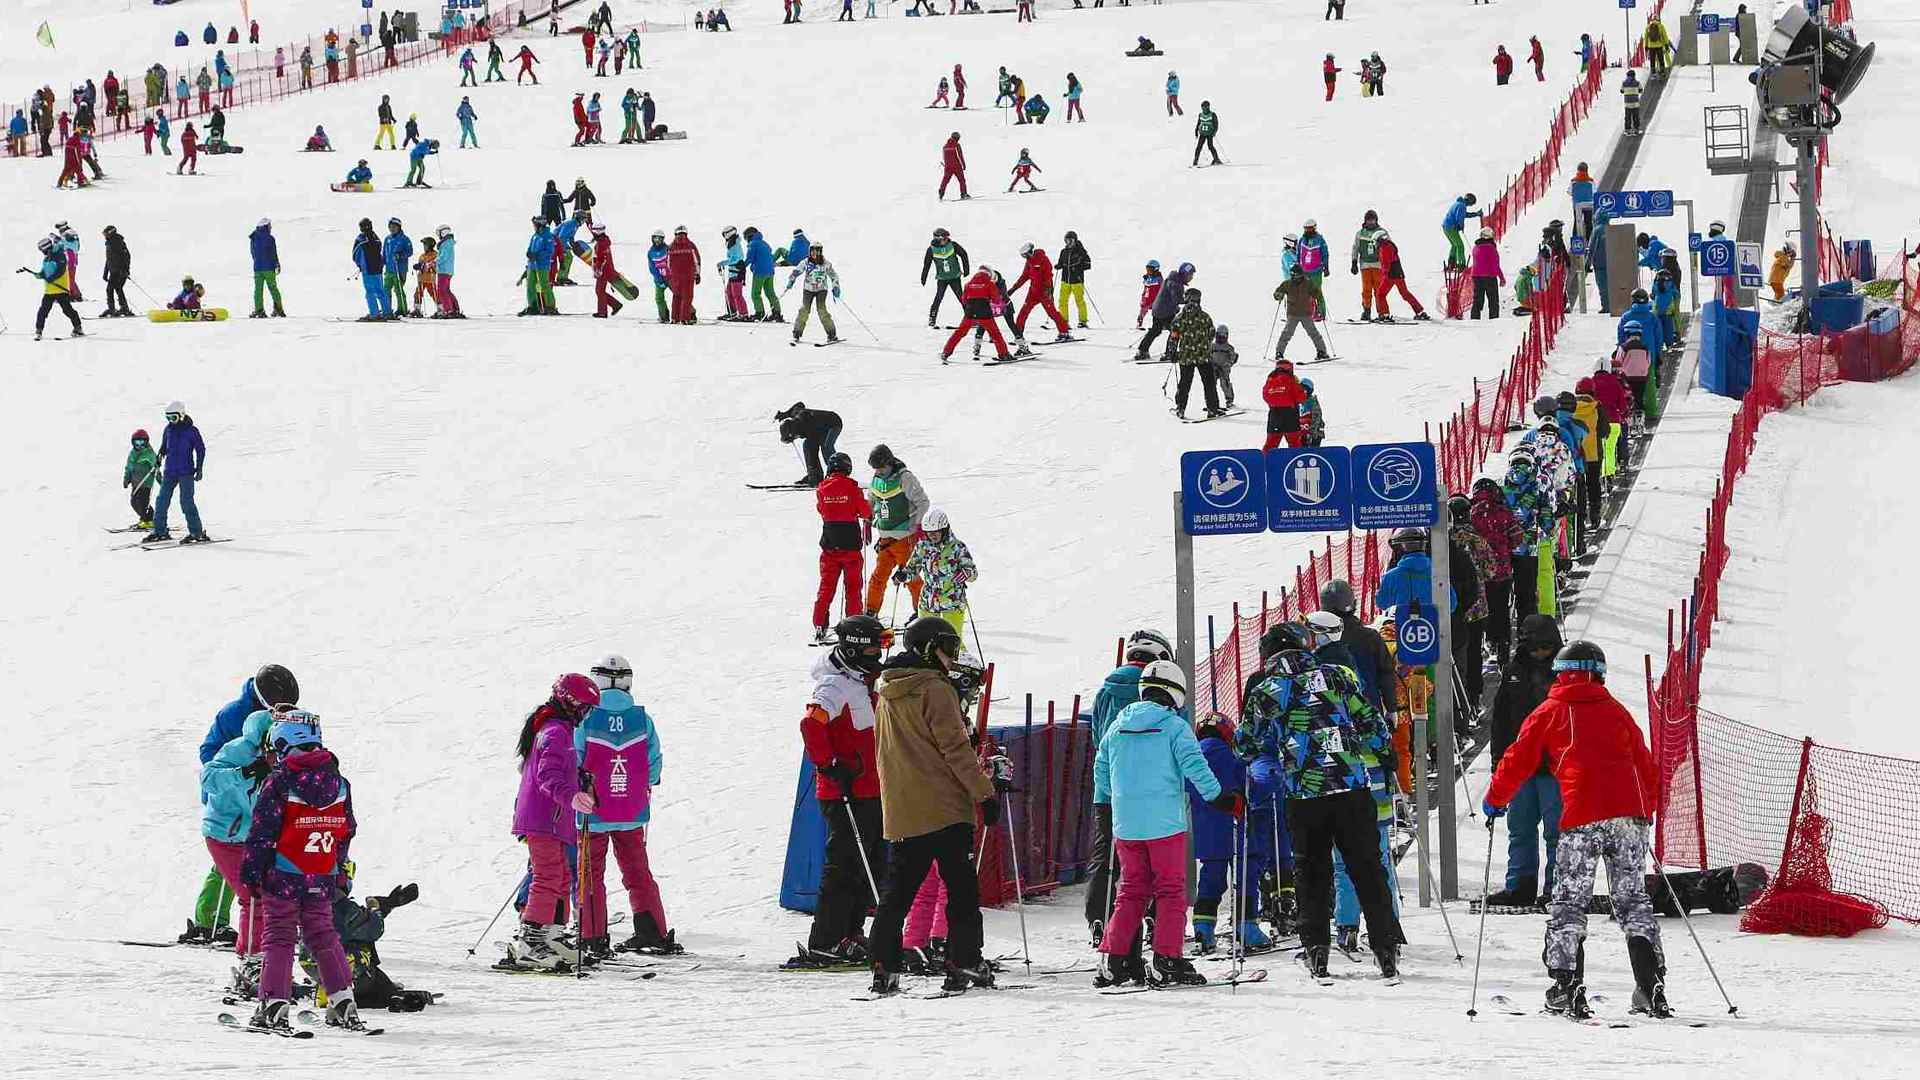 The Million Dollar Question: Skiing Or Snowboarding?